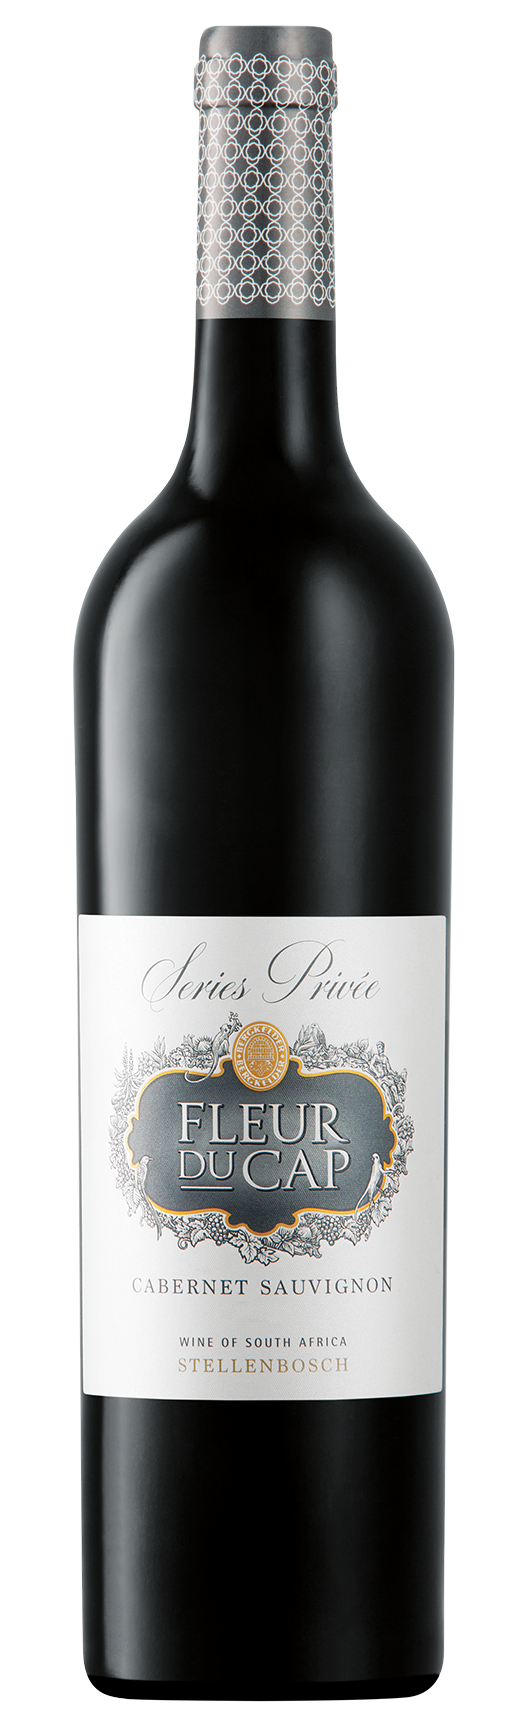 The Series Privée range Series Privée Cabernet Sauvignon